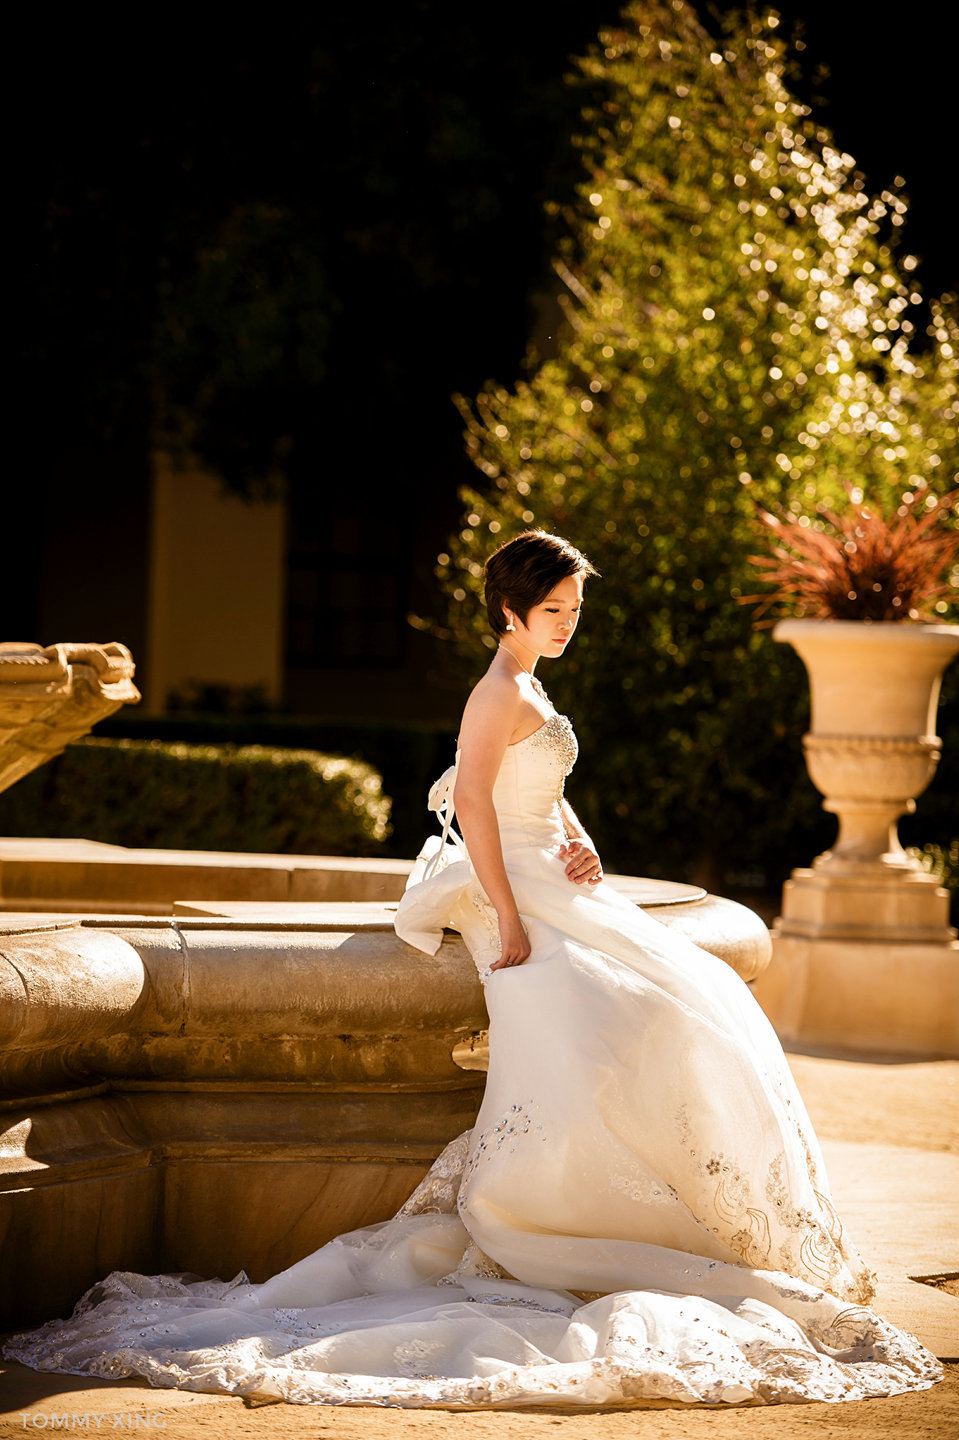 Los Angeles Chinese Wedding Photographer Tommy Xing 洛杉矶婚礼婚纱摄影 Pasadena city hall 7.jpg